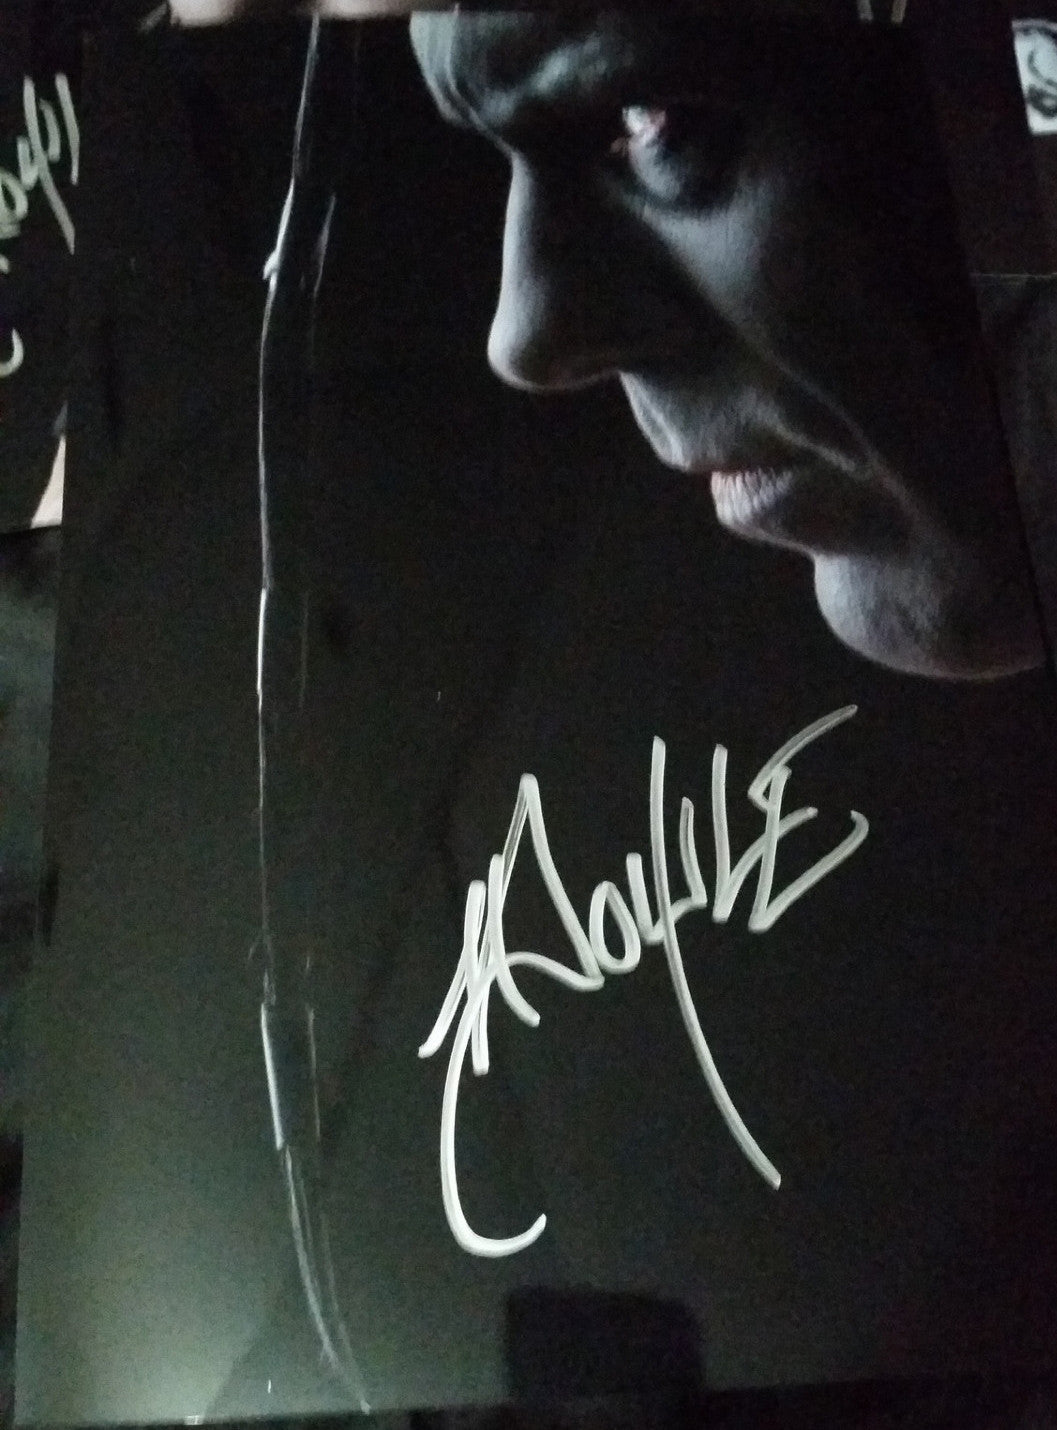 Doyle Wolfgang Von Frankenstein - Profile - Signed limited edition metallic 8x12